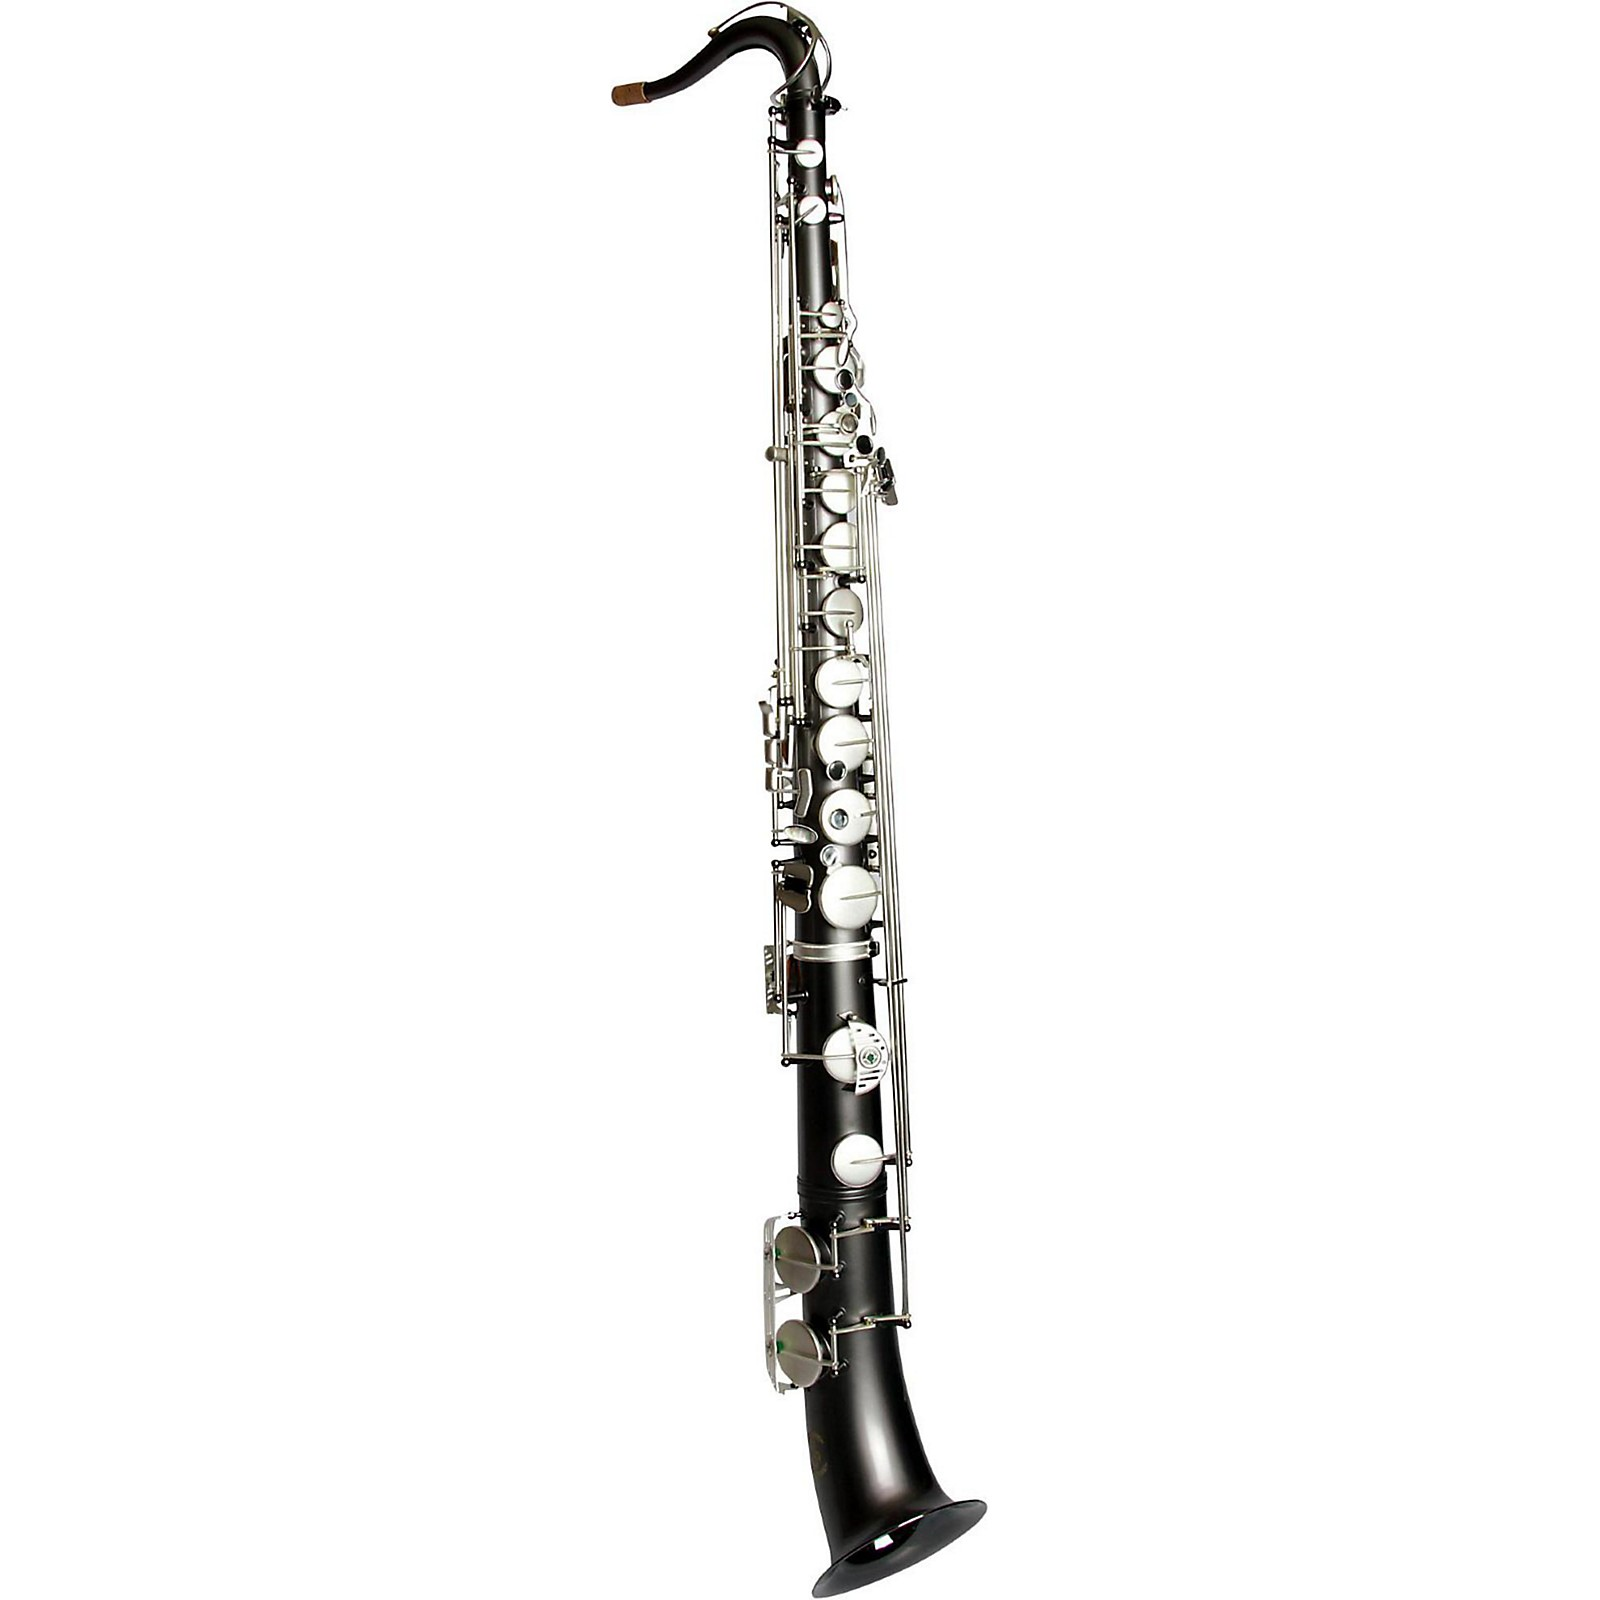 Sax Dakota SDTS-1022 Professional Straight Tenor Saxophone